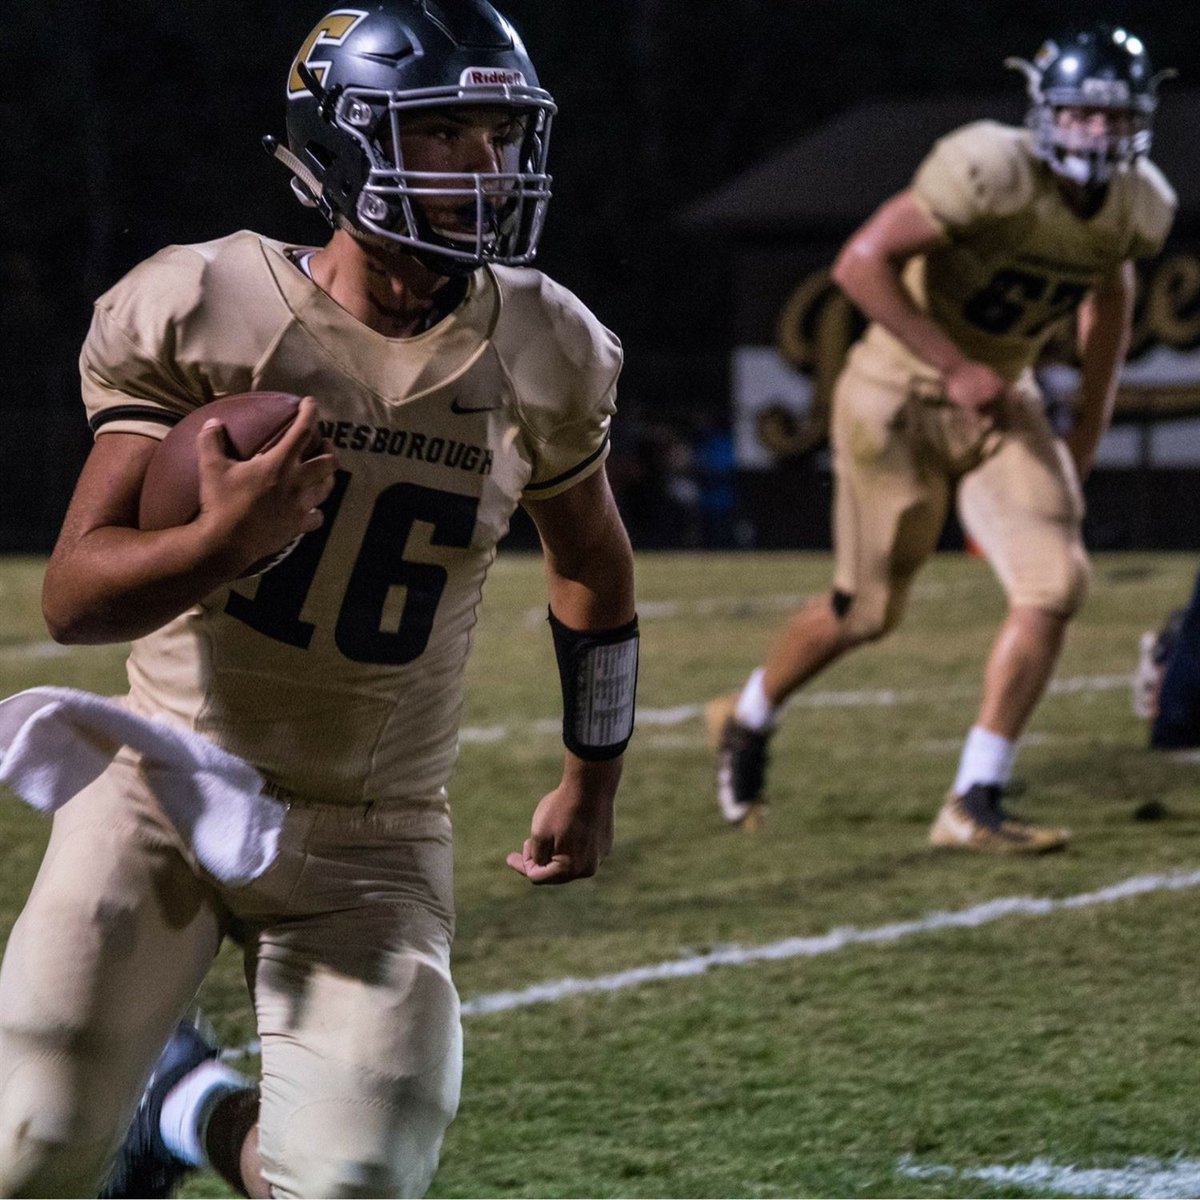 scoutSMART Spotlight: @cade_larkins who has a smartSCORE of 9.0 and statSCORE of 7.3. He had over 3900 yards along with 42 tds and only 11 interceptions. Off the field, he maintained a 4.08 GPA! Model Student Athlete 👏🏈📚! #football #recruit #ncaafb #cfb #studentathlete